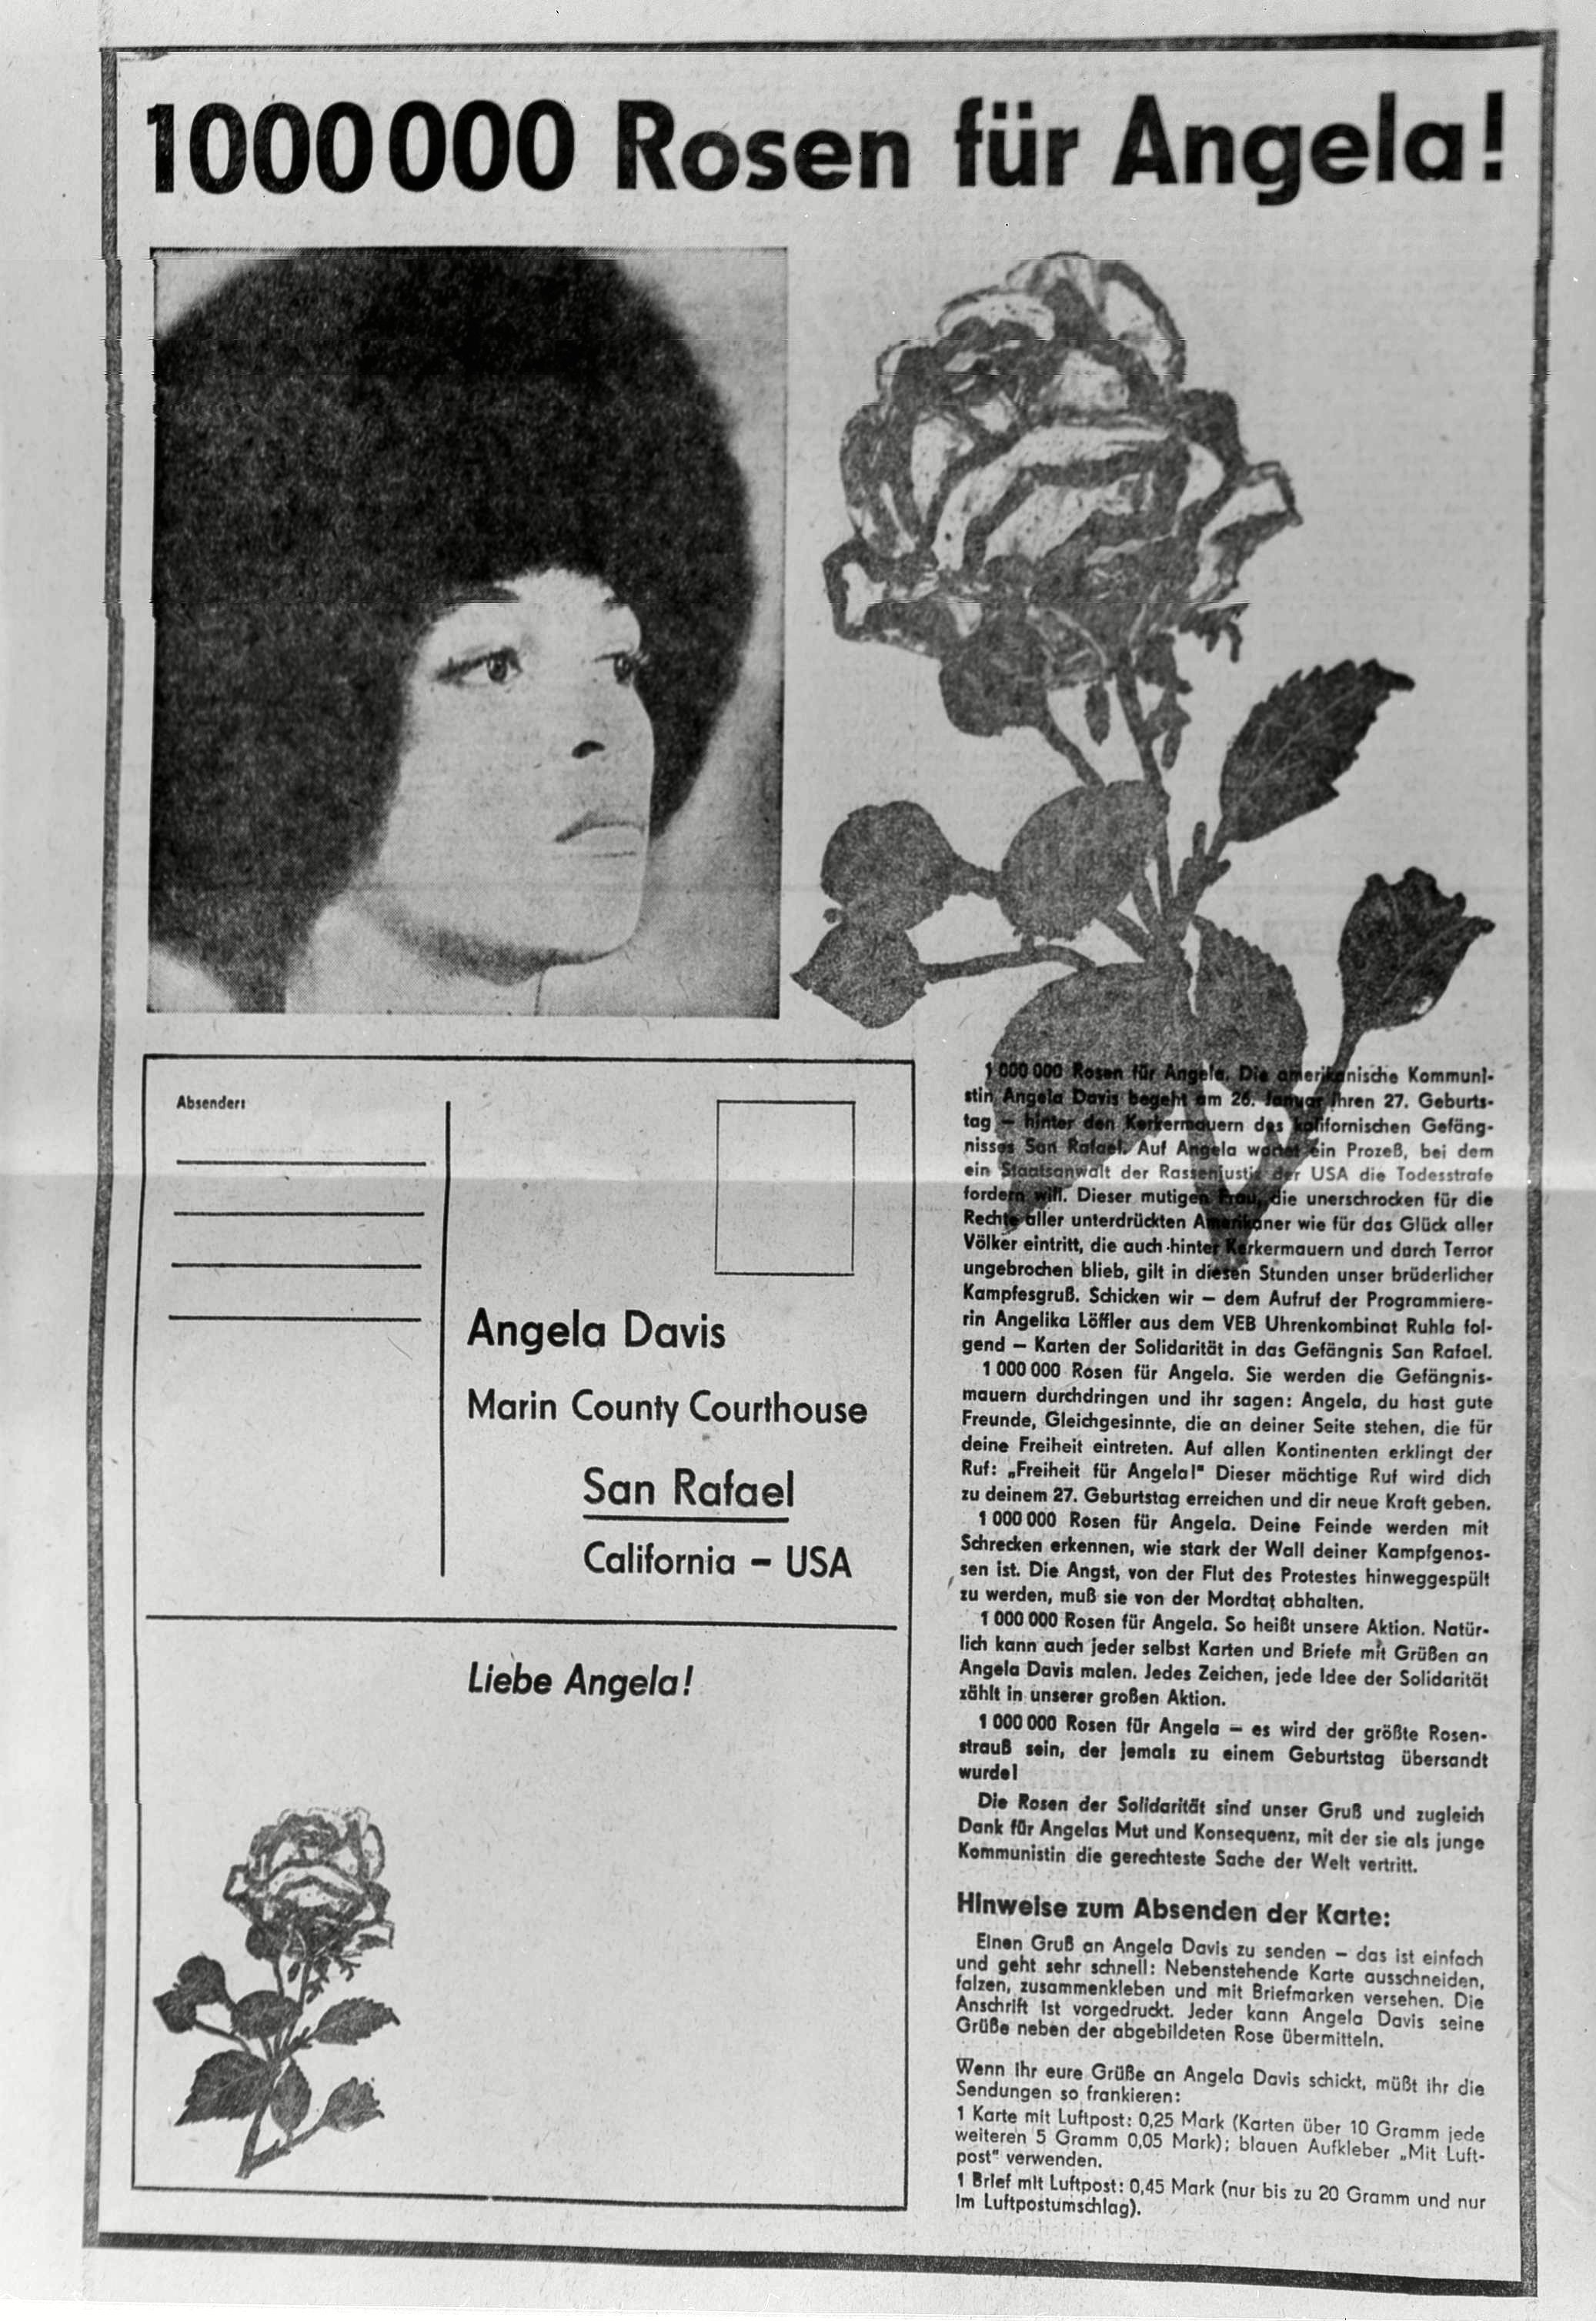 Angela Davis This is the layout of a page in the East German newspaper Wif, to send symbolic roses to Angela Davis, imprisoned American Black Power advocate 19 Jan 1971